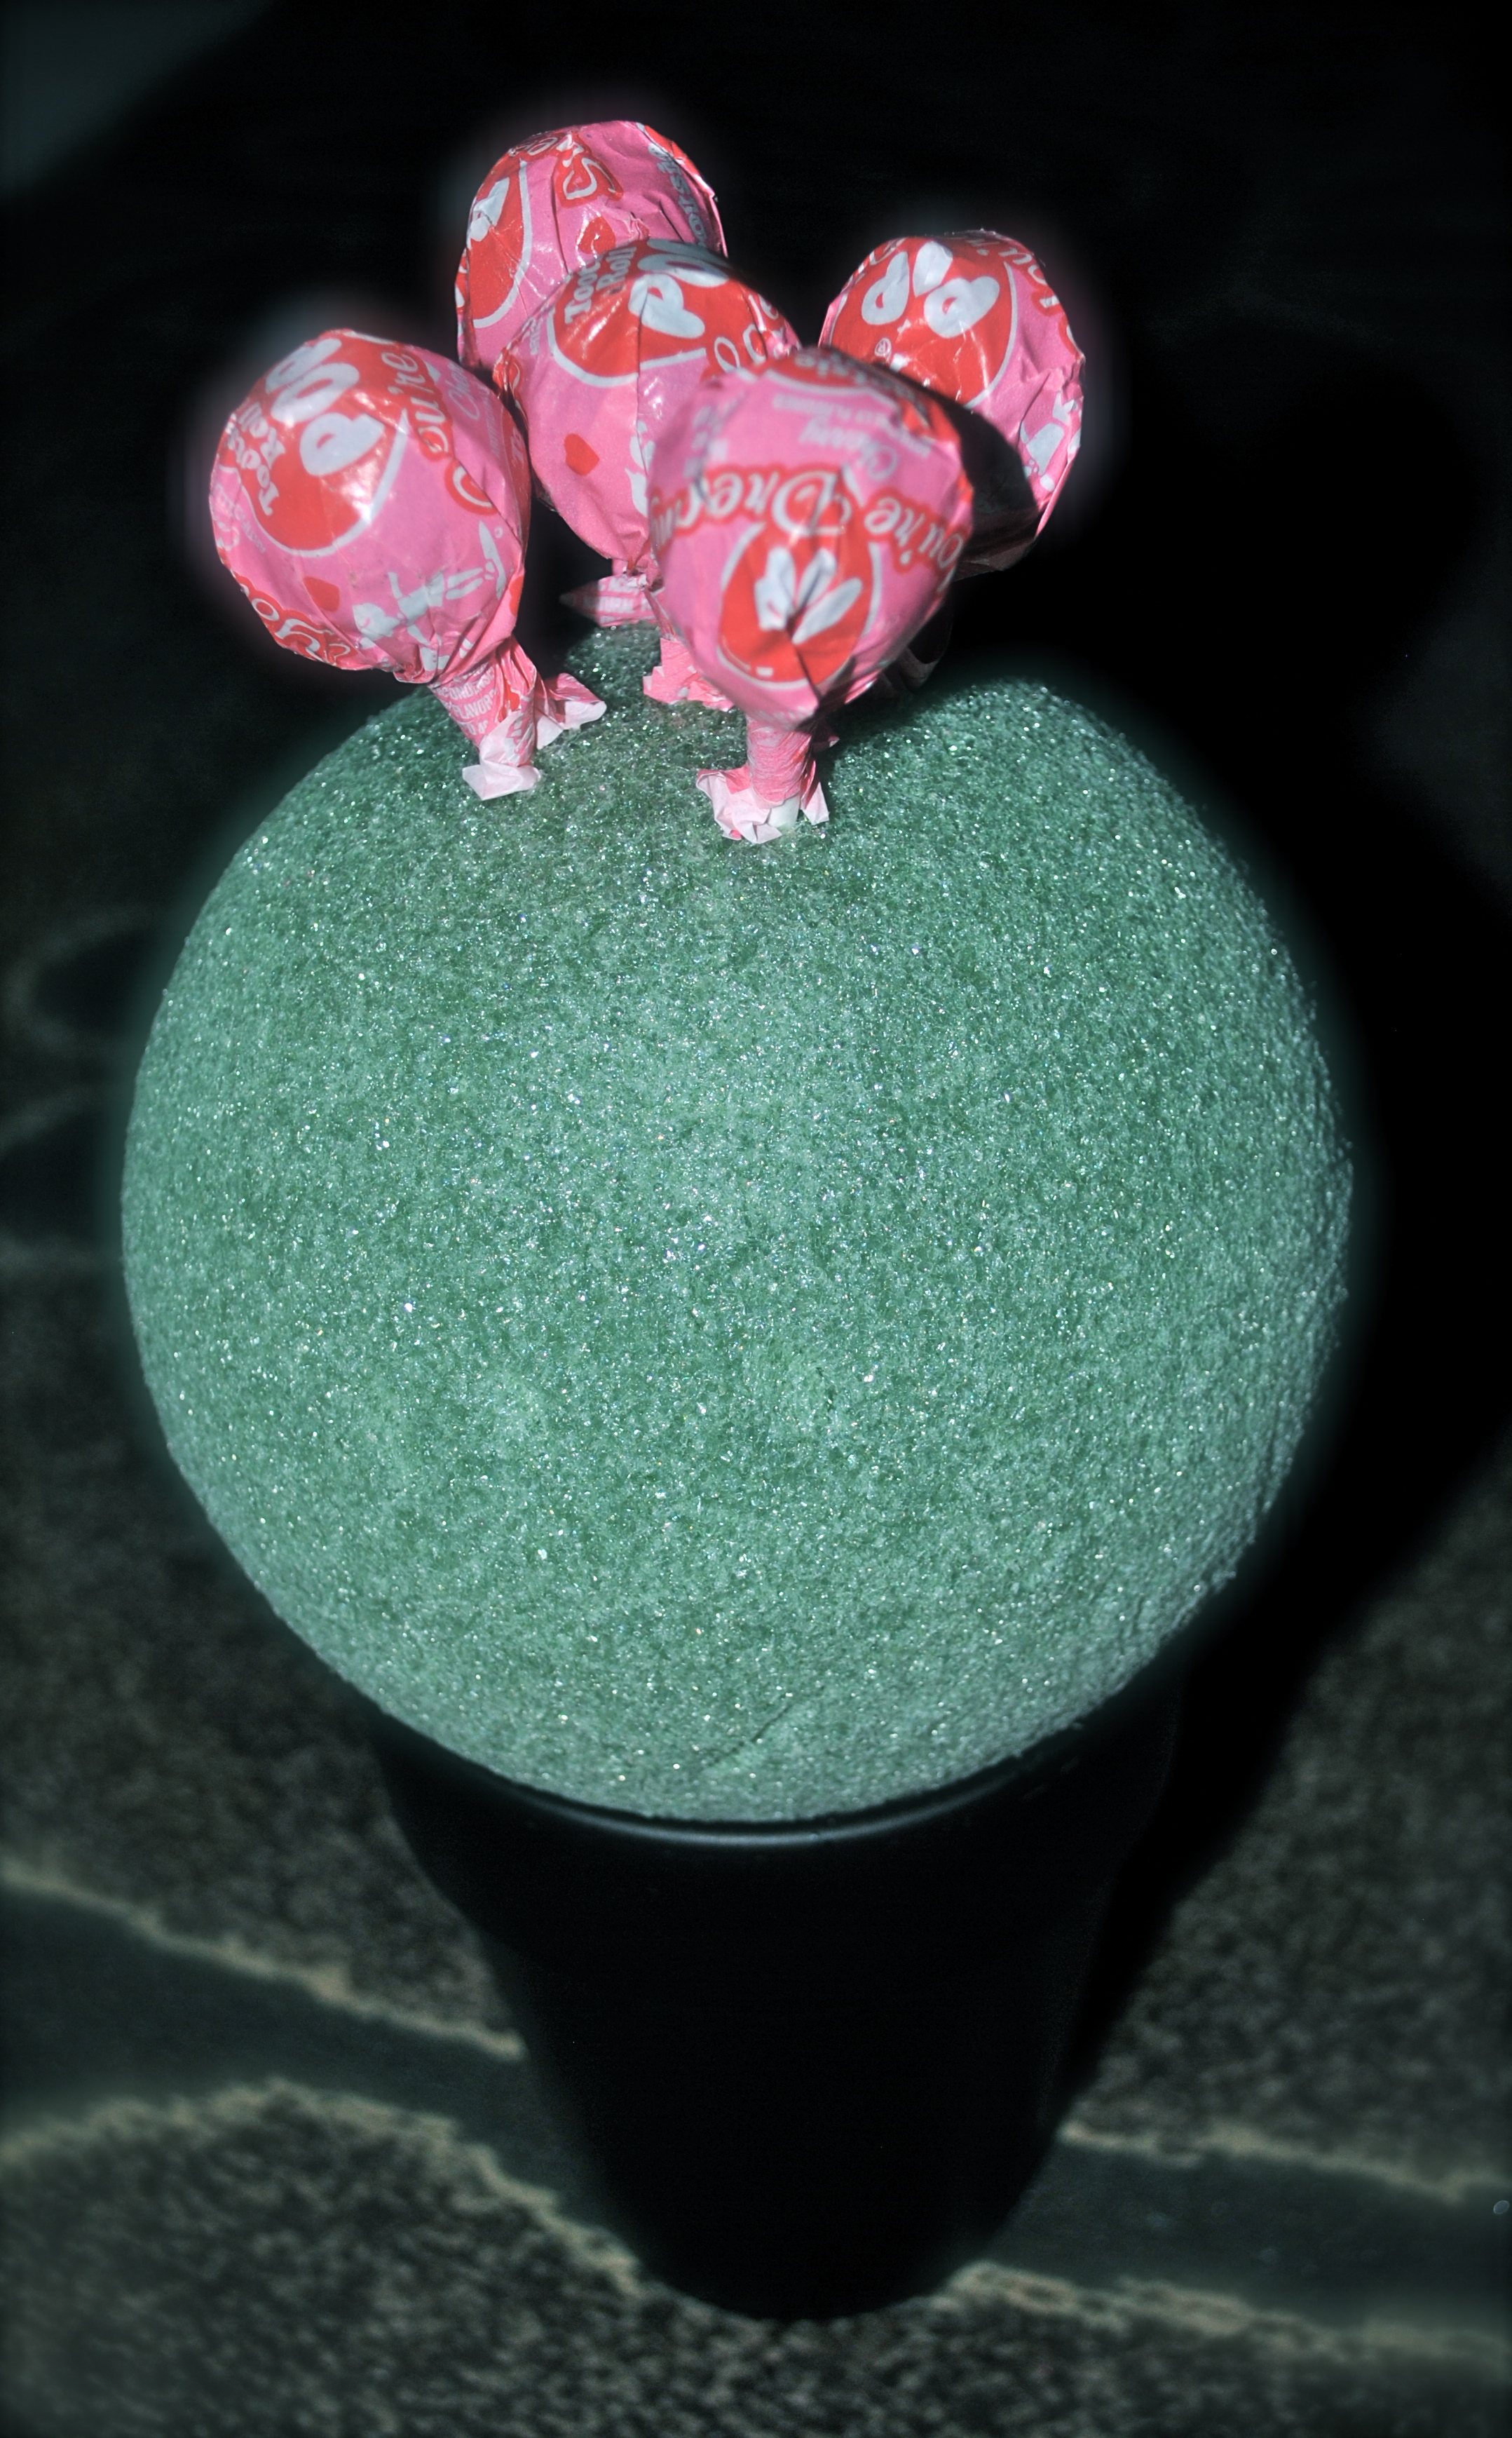 day 58: get crafty/ minnie mouse table decor, treat favors, diy